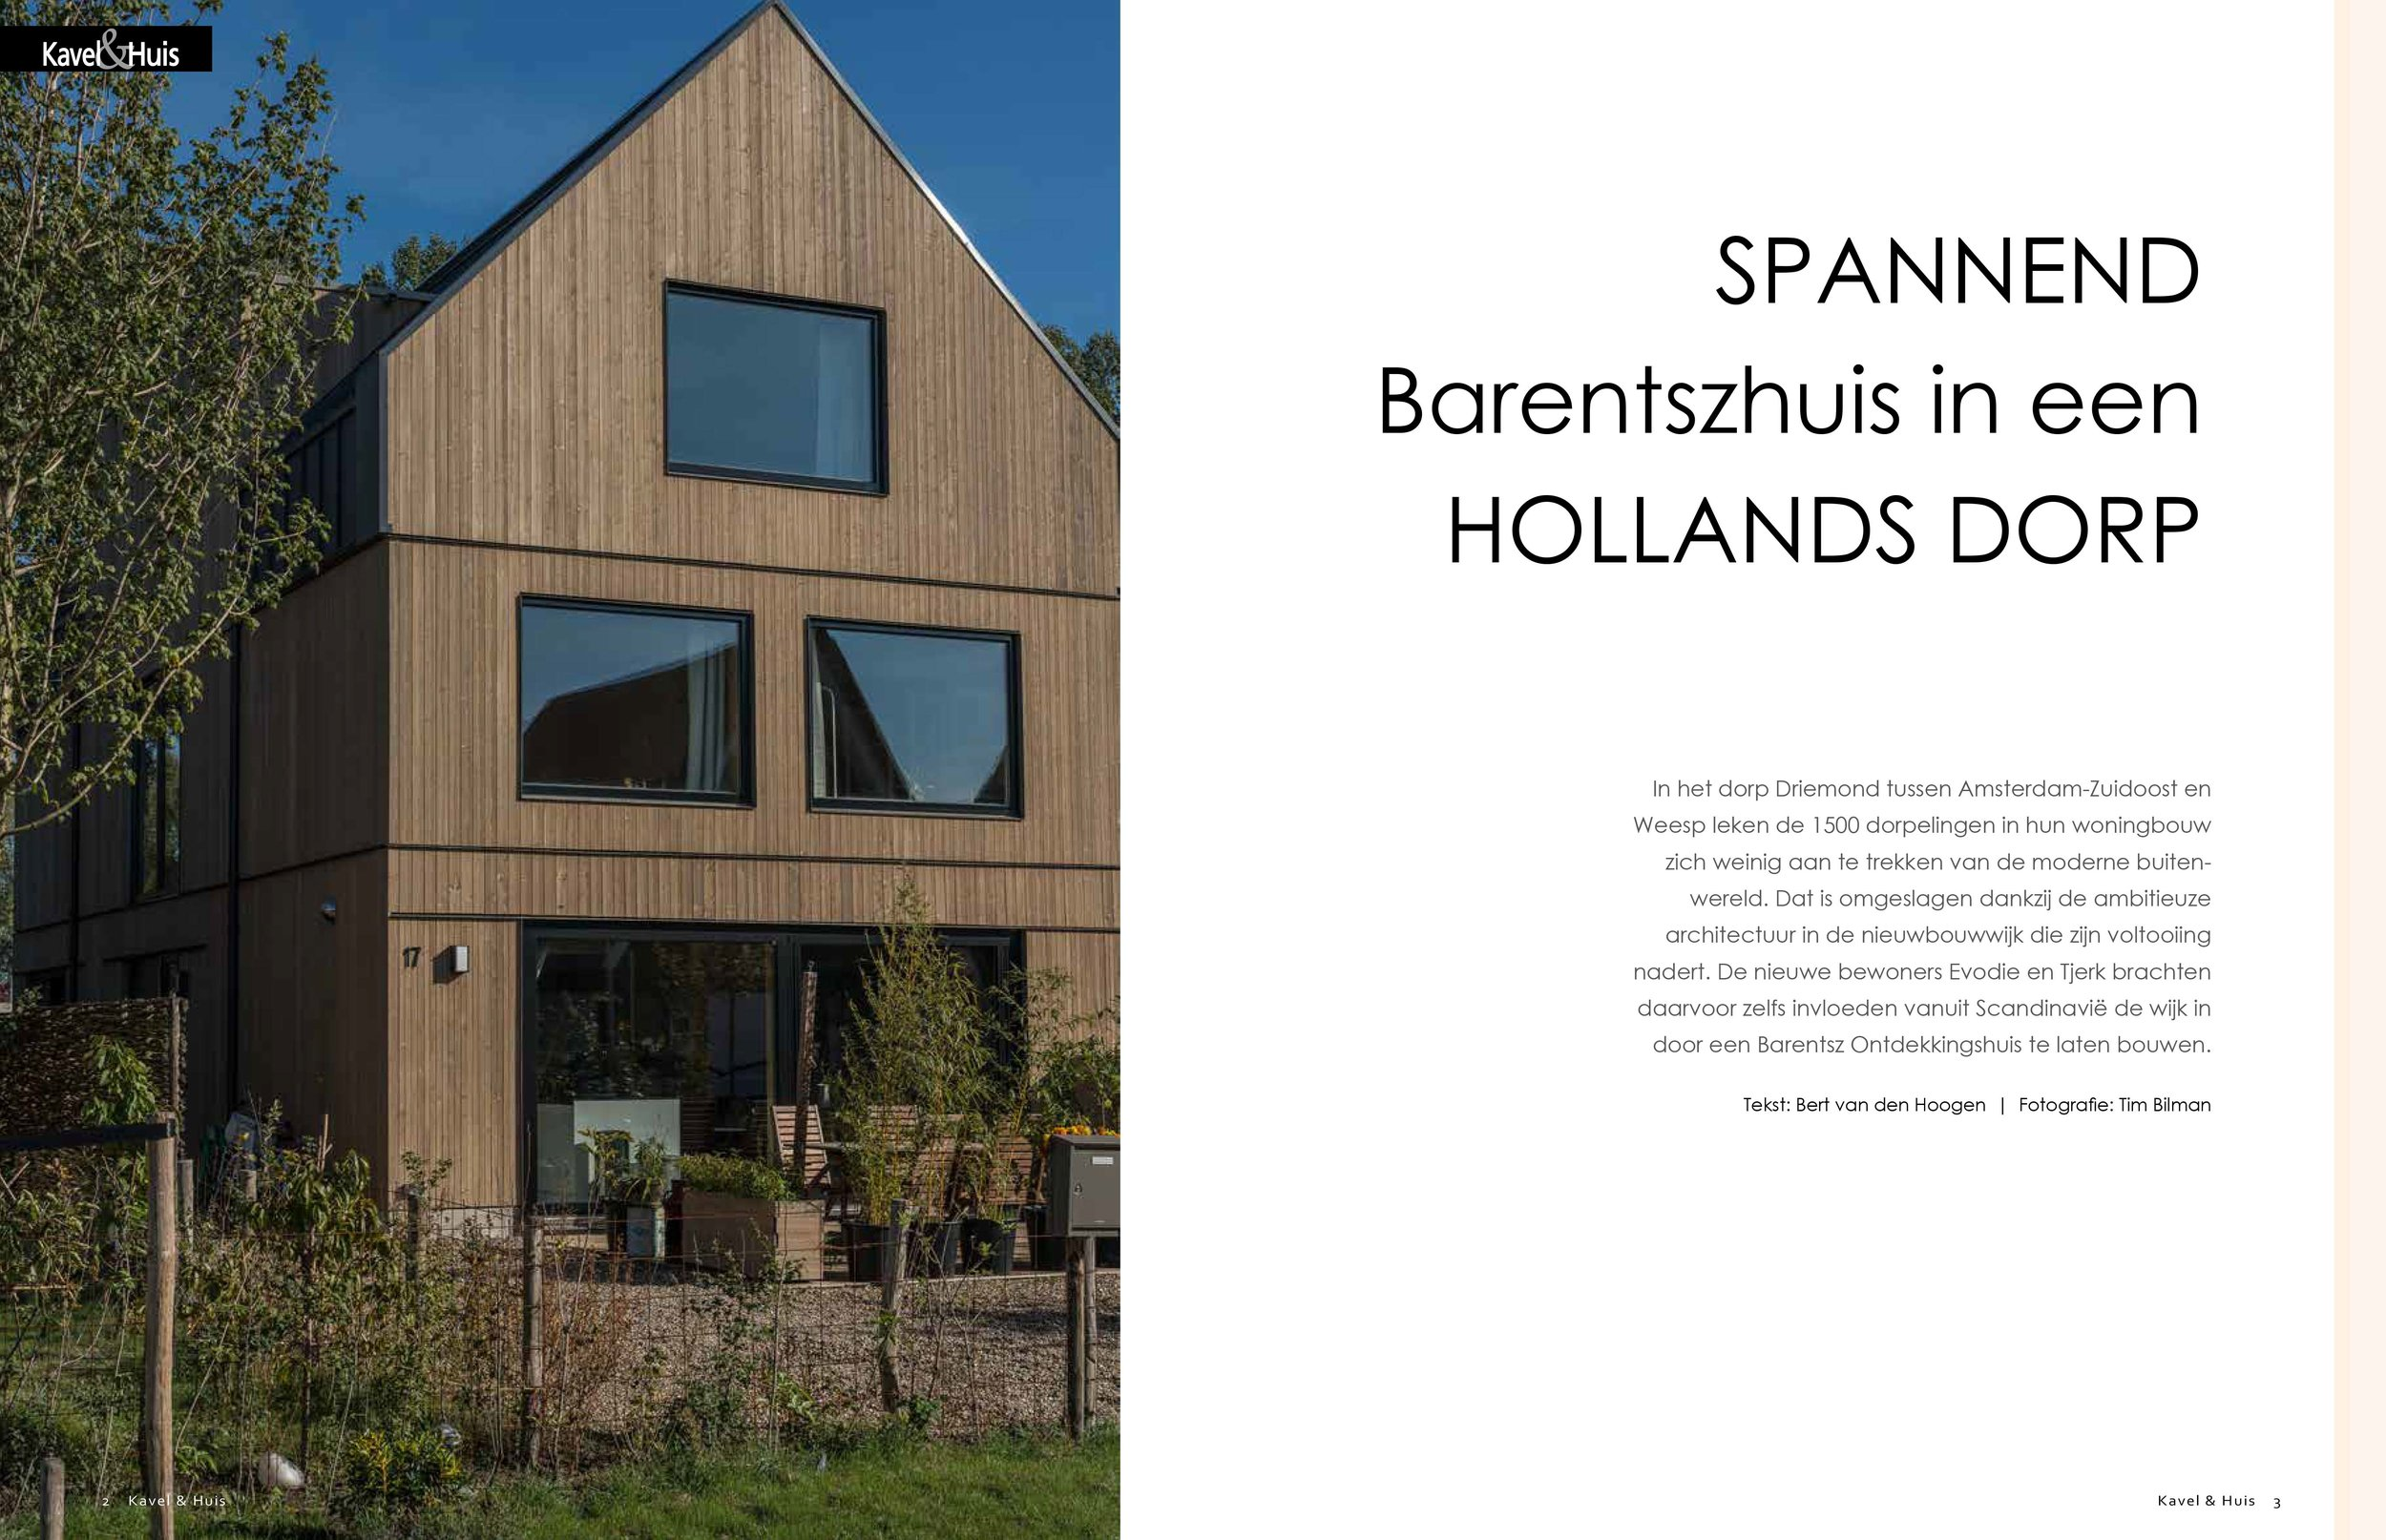 - For the dutch magazine Kavel & Huis I made a report about this Barentsz Architects house. It was published Winter '18.